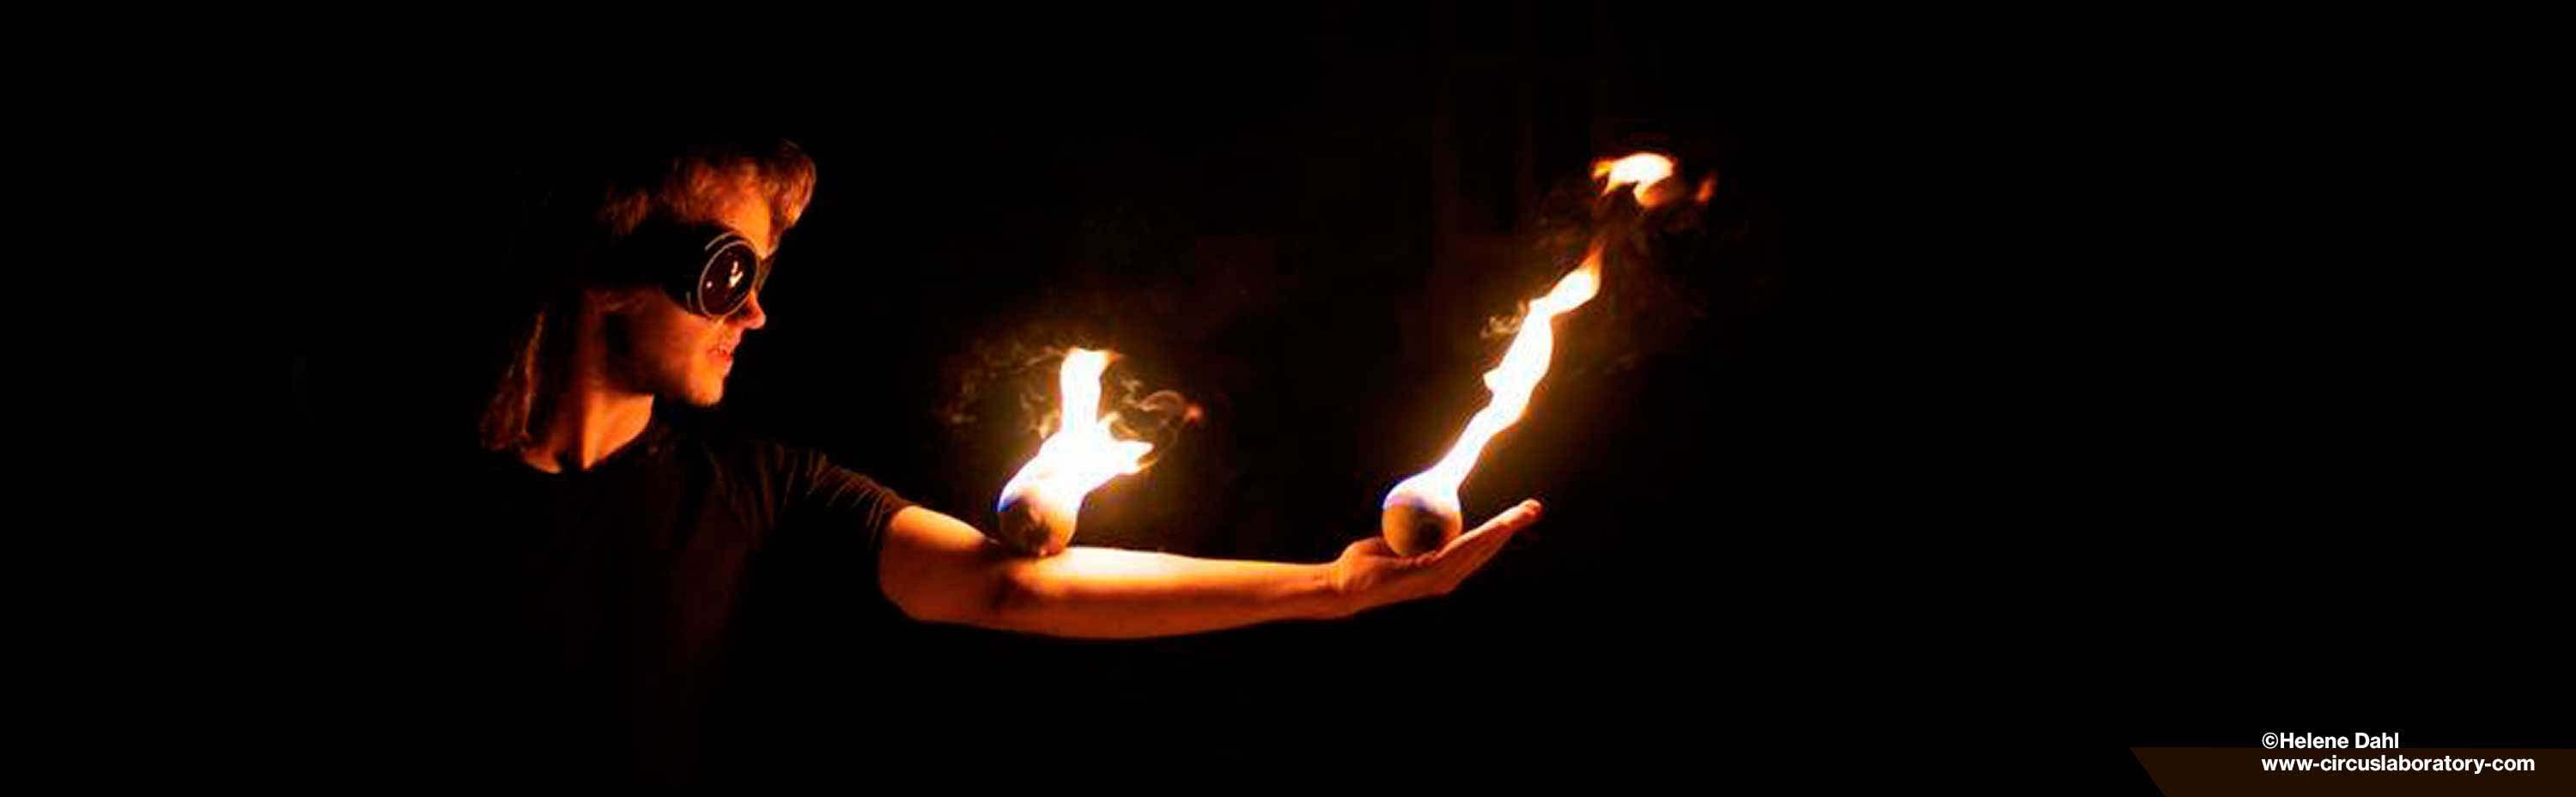 Fire Juggling Balls